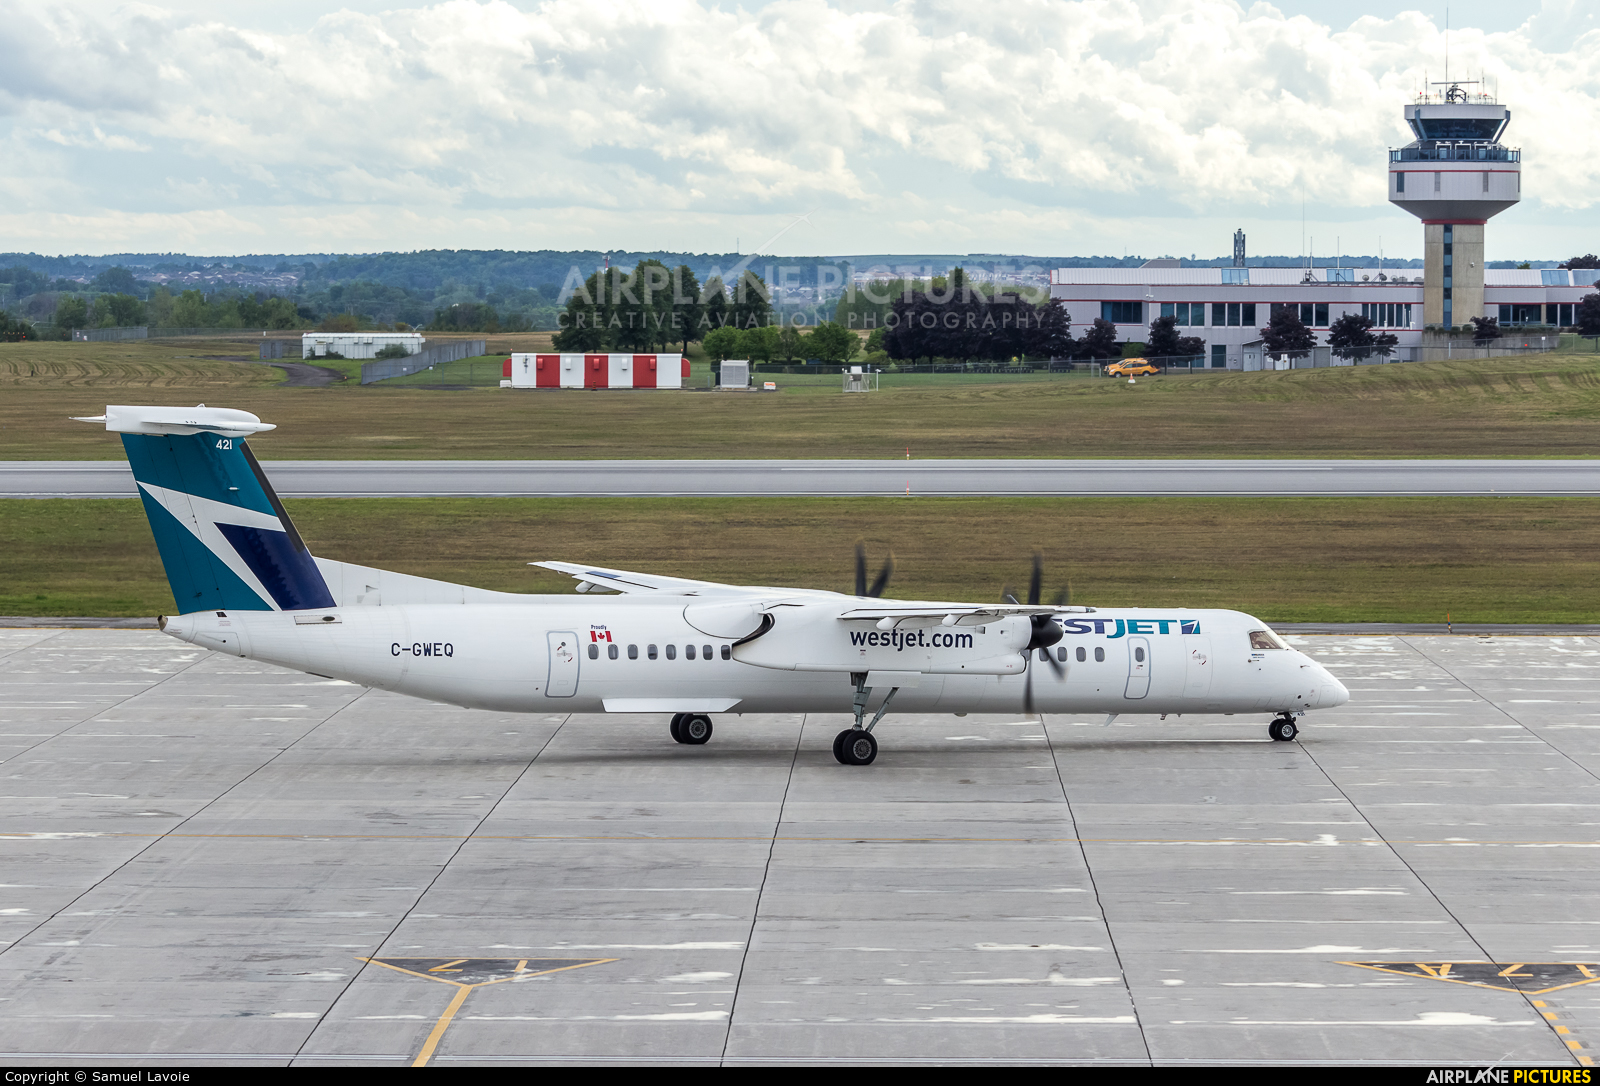 WestJet Encore C-GWEQ aircraft at Ottawa - Macdonald-Cartier Intl, ON